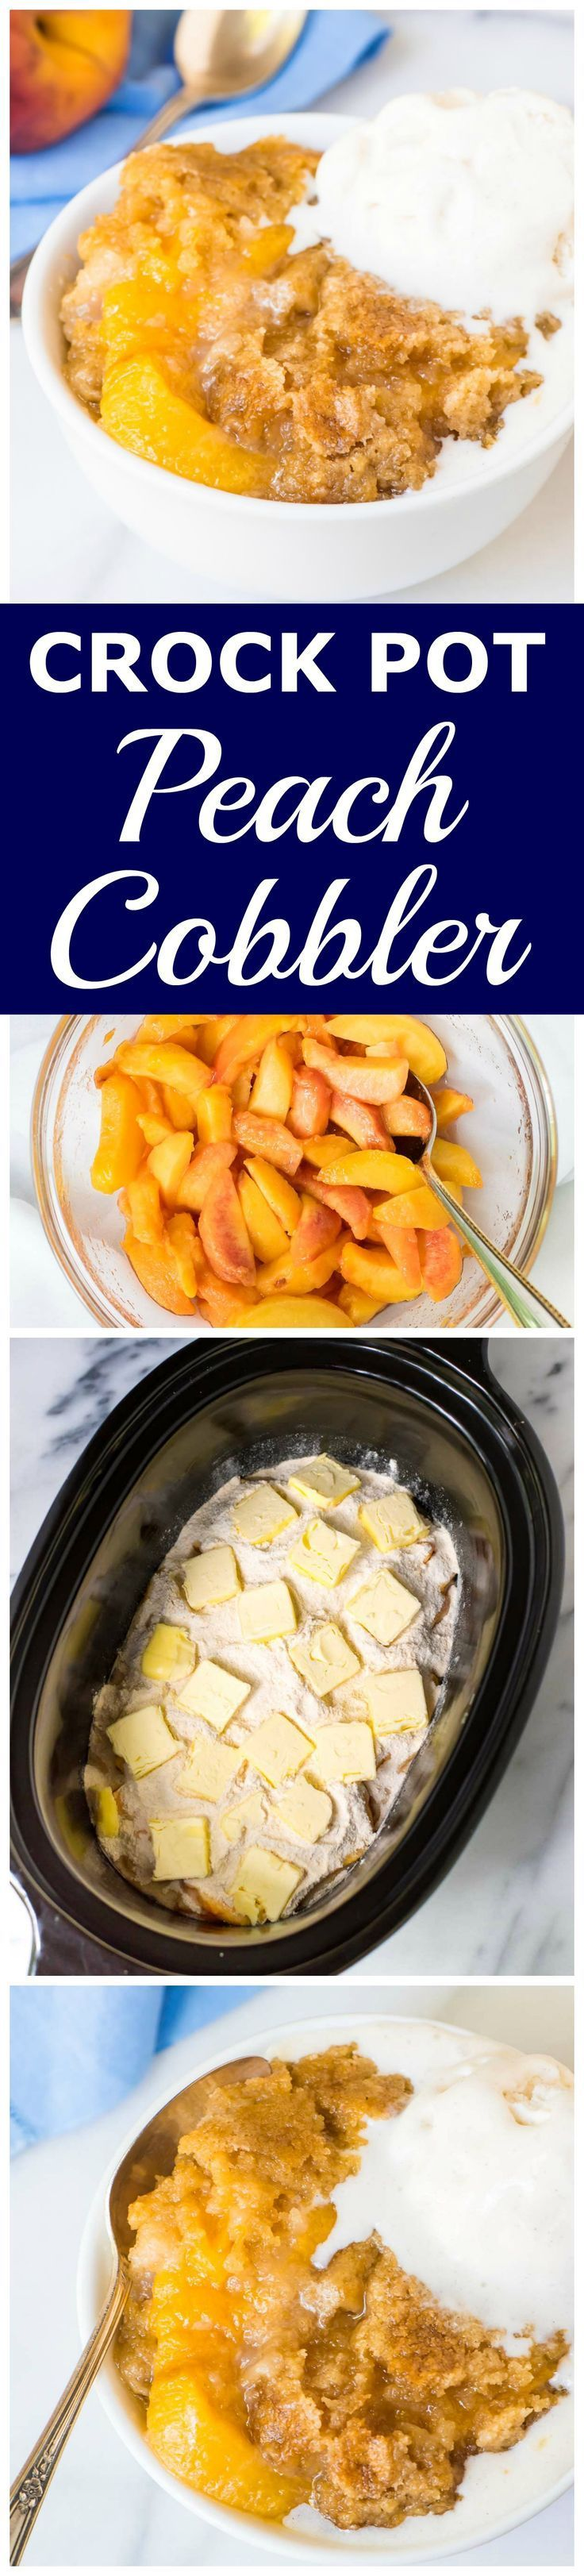 Crock Pot Peach Cobbler —  EASY recipe made like a dump cake. Just put the ingredients in your slow cooker and walk away! Juicy peaches, buttery golden crust, and your crockpot does the work. Recipe at http://wellplated.com /wellplated/